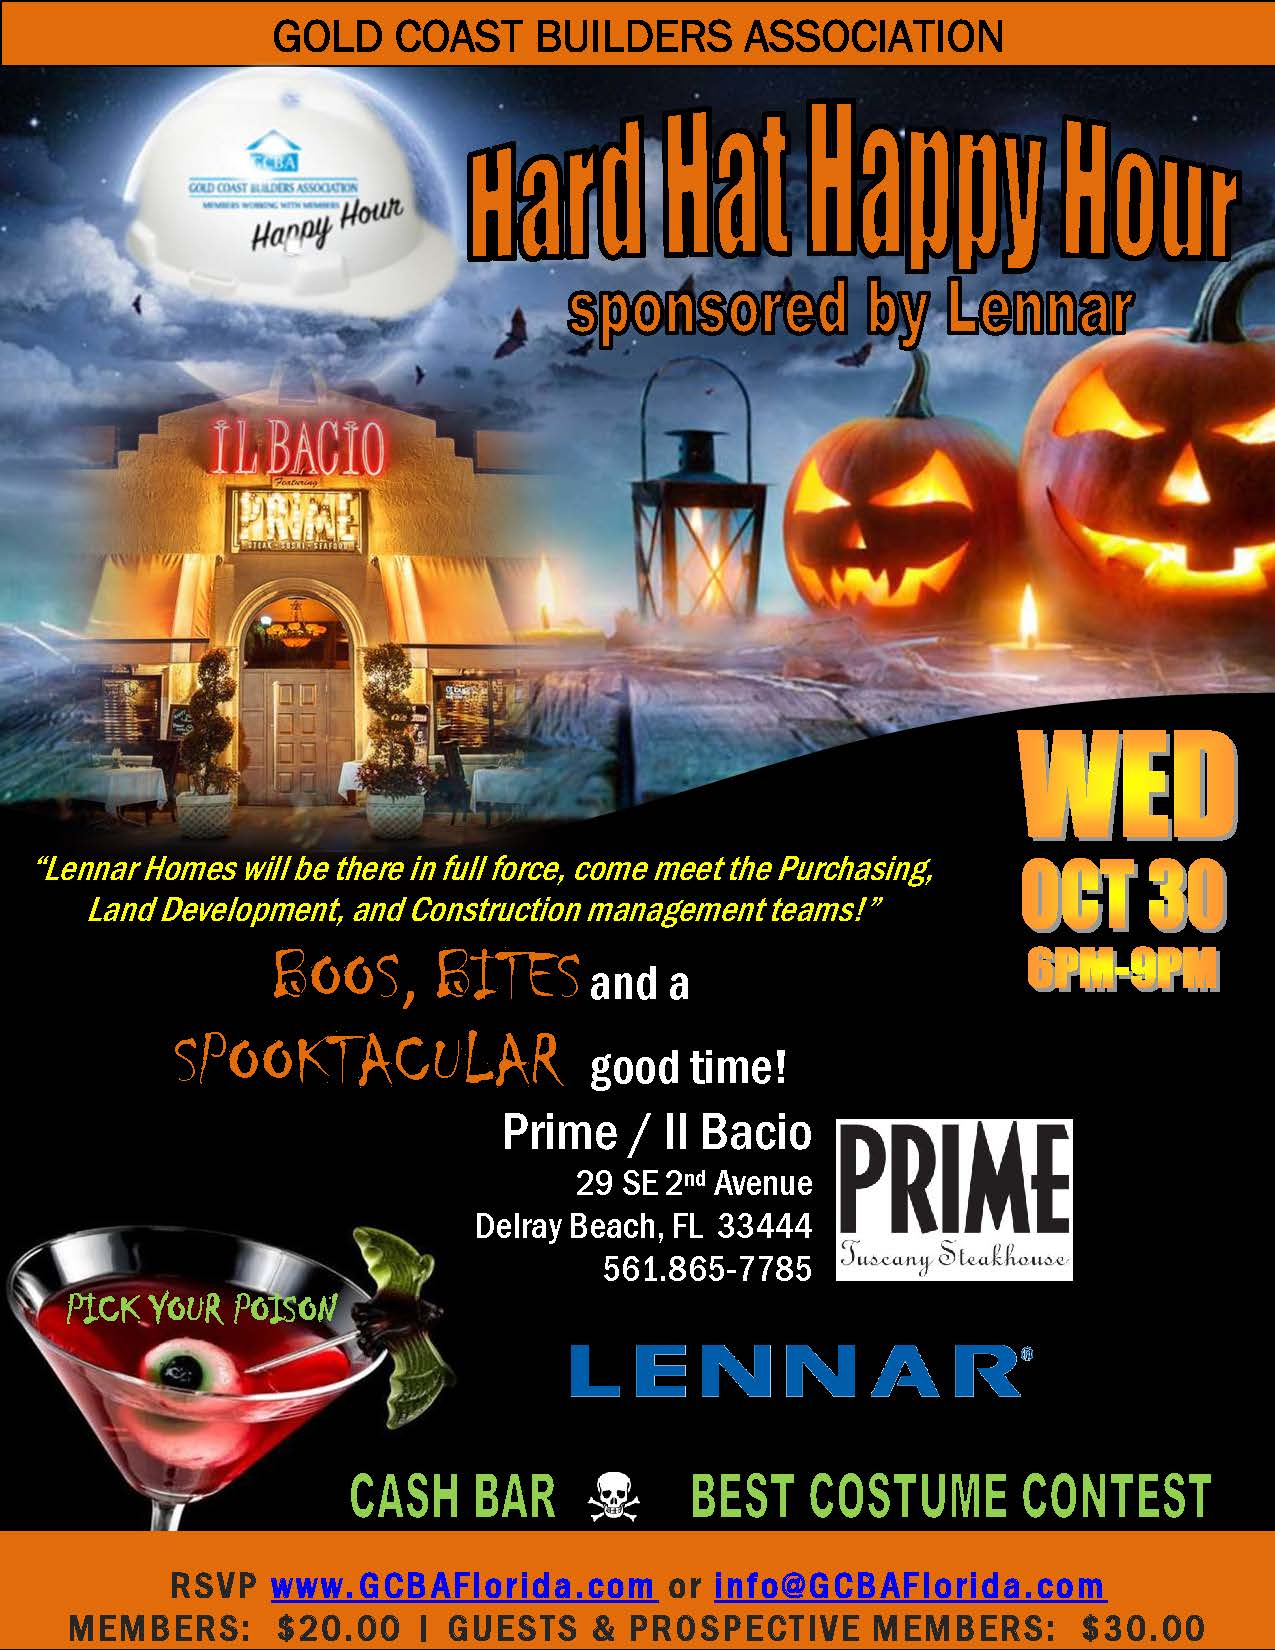 Hard Hat Happy Hour Flyer - October 2019